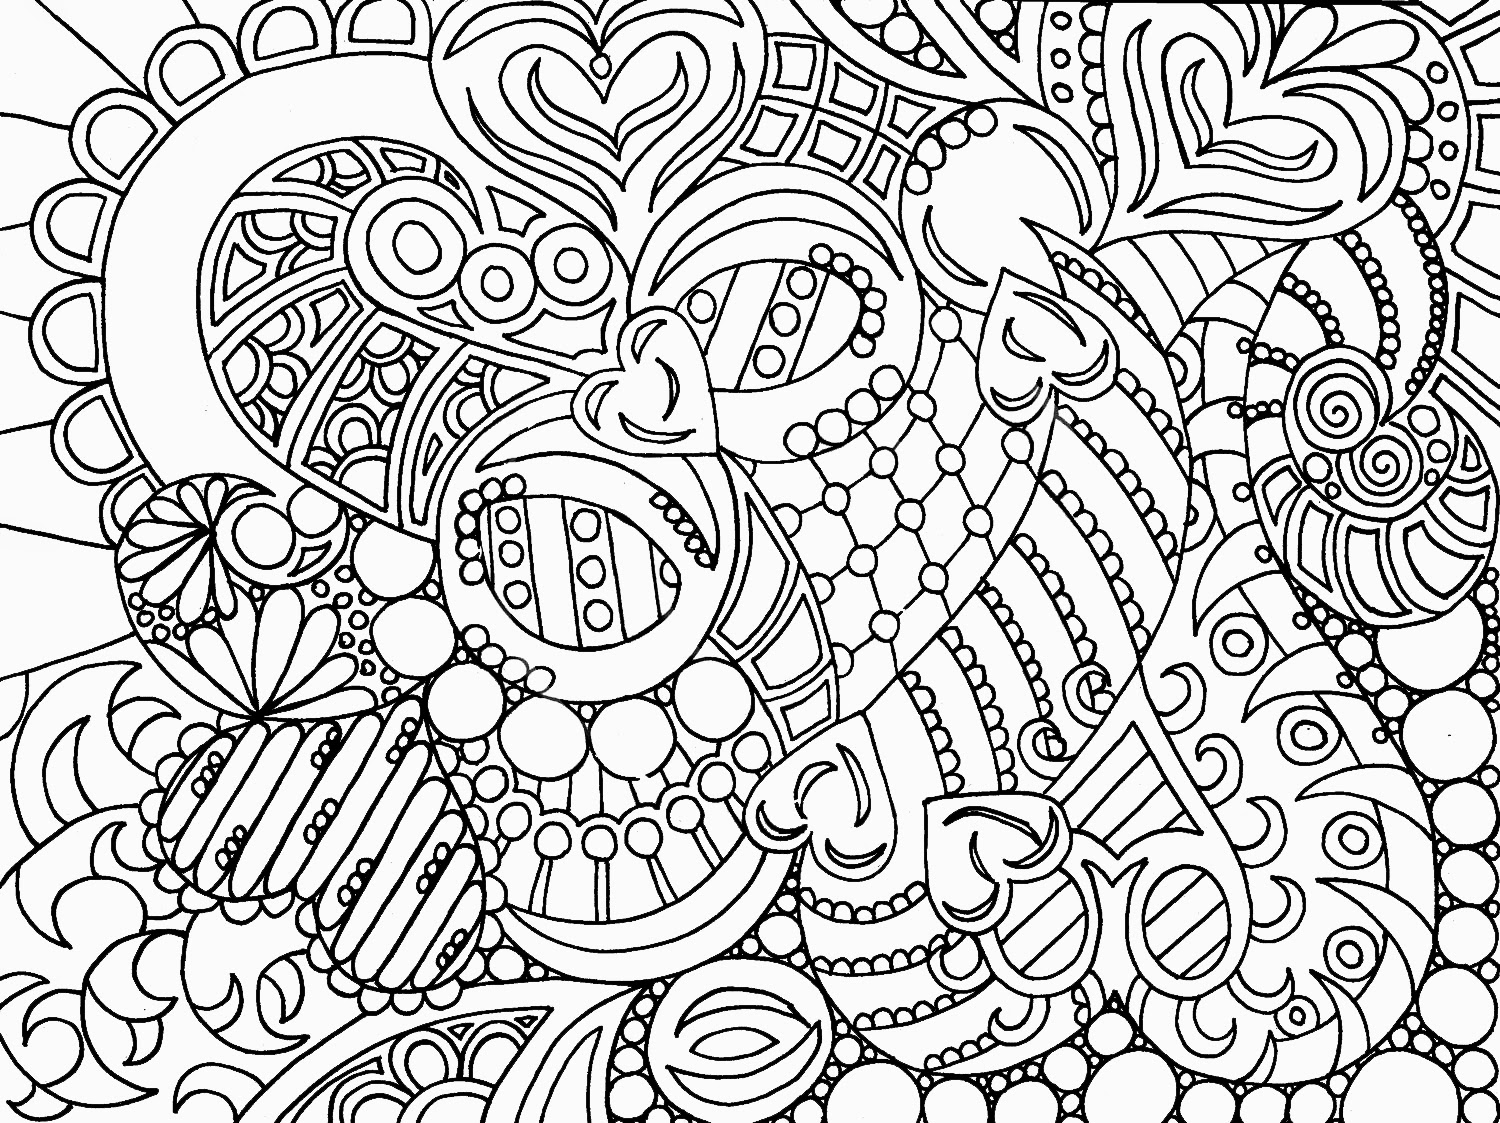 abstract coloring pages coloring pages abstract coloring pages free and printable pages coloring abstract